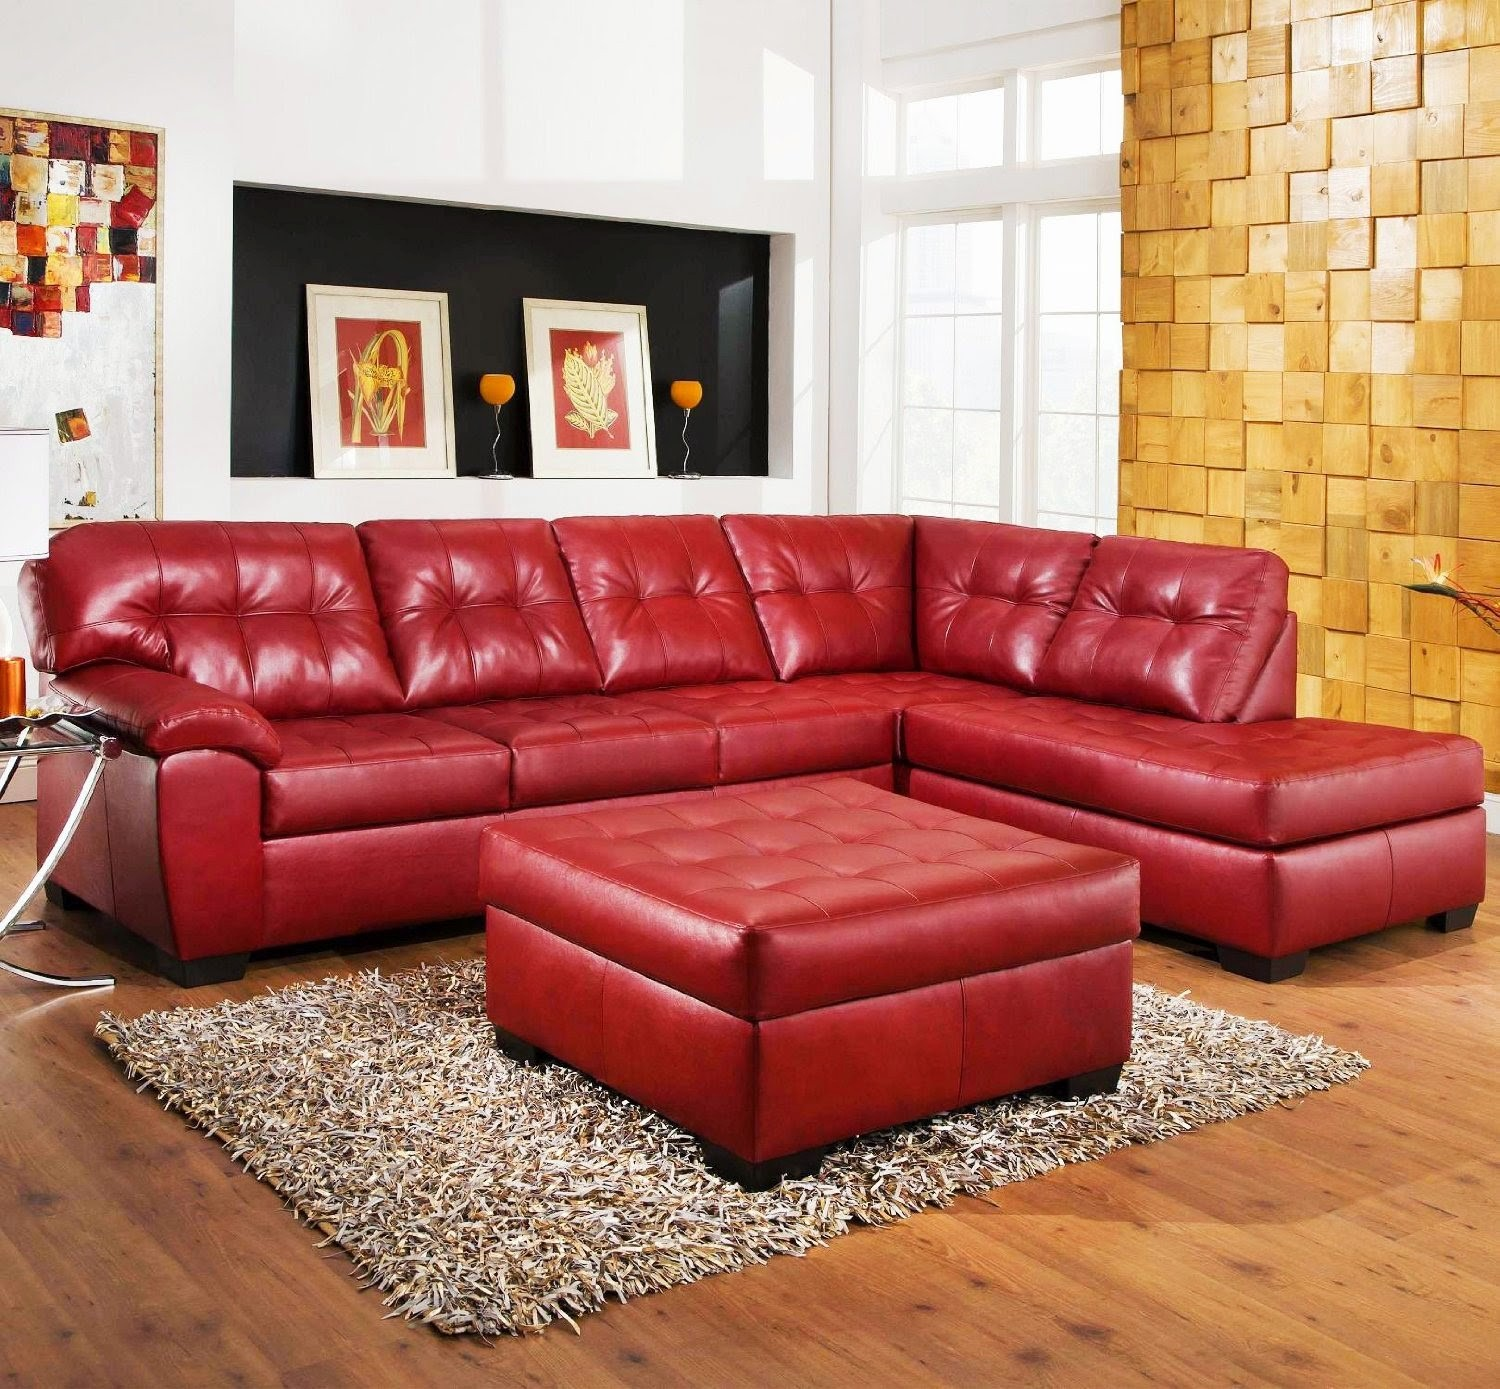 Red Sectional sofa Fantastic Luxury Red Sectional sofa for Your Living Room sofa Inspiration Ideas